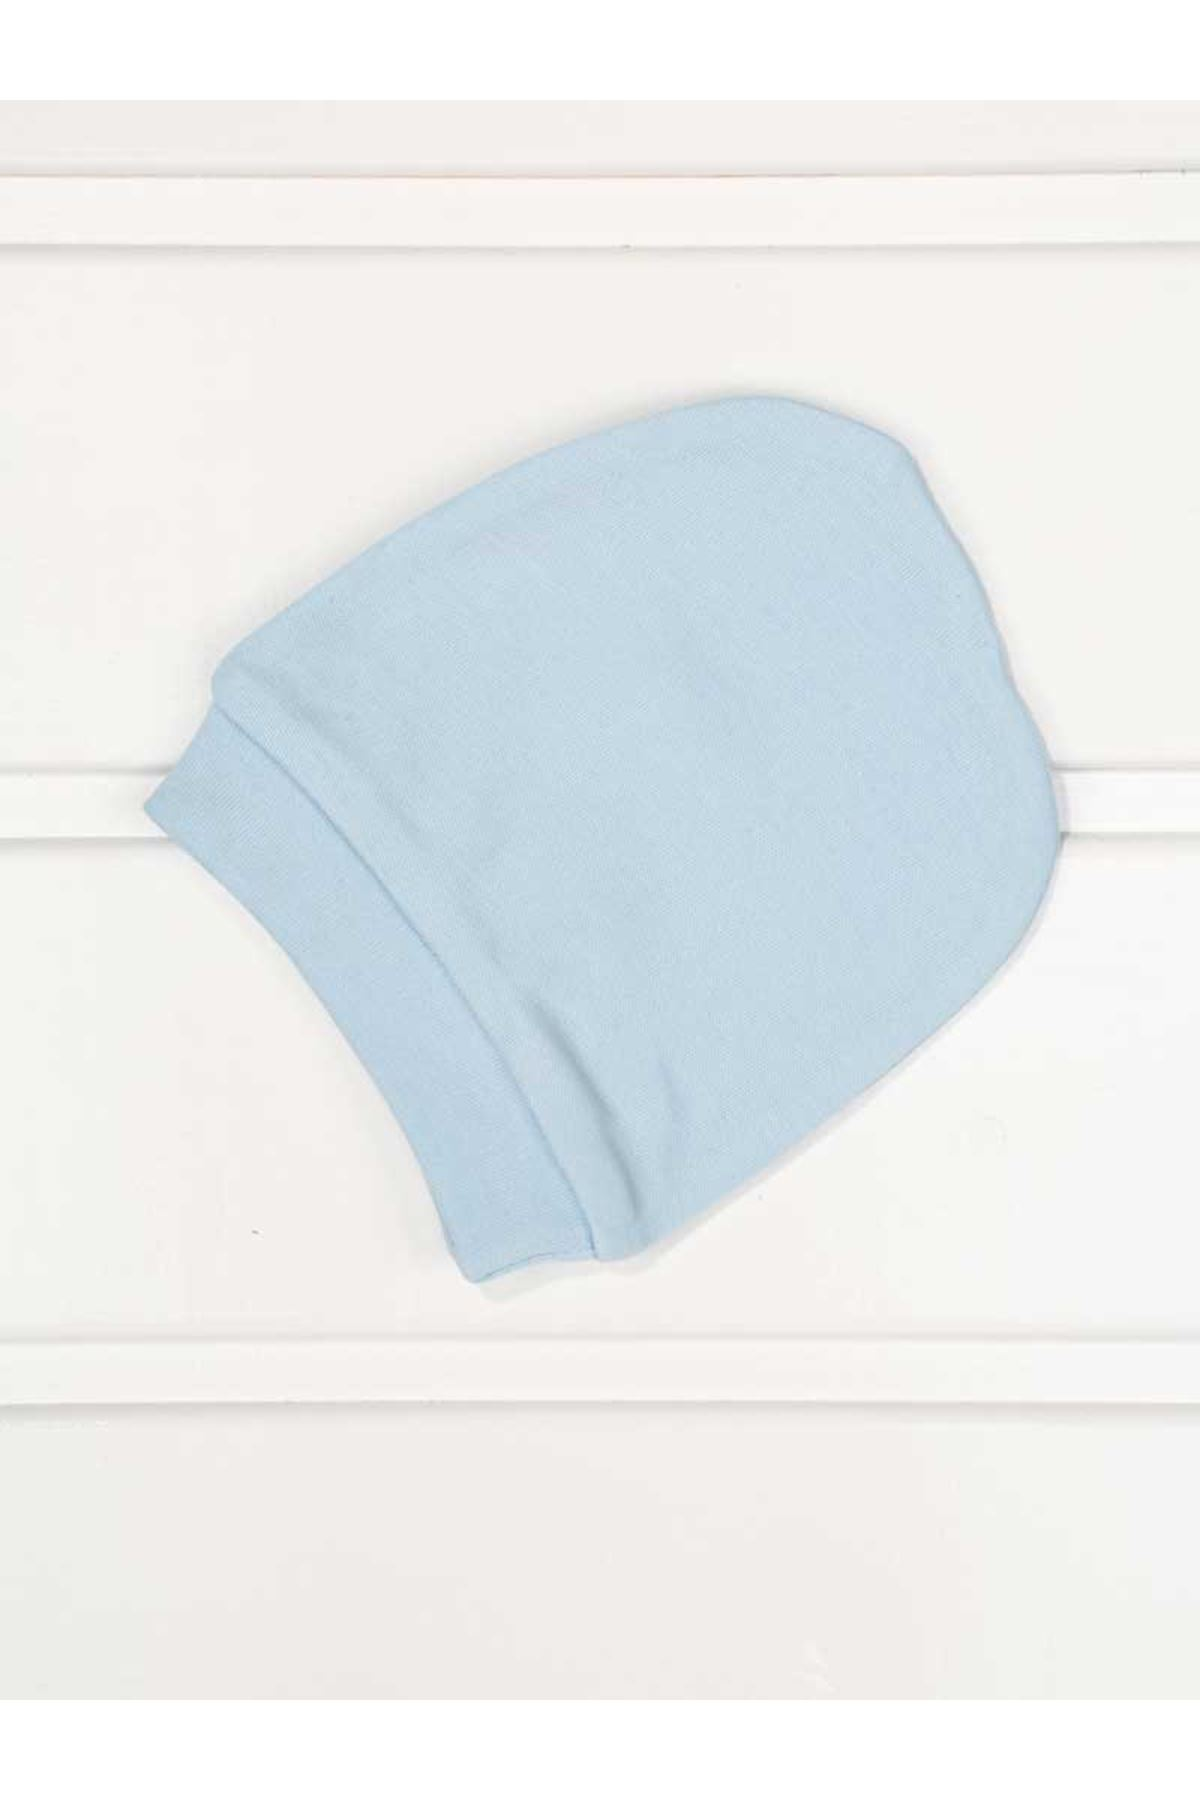 Blue baby boy solid color 3-piece suit overalls gloves hat infants cotton comfortable babies daily newborn hospital outlet model